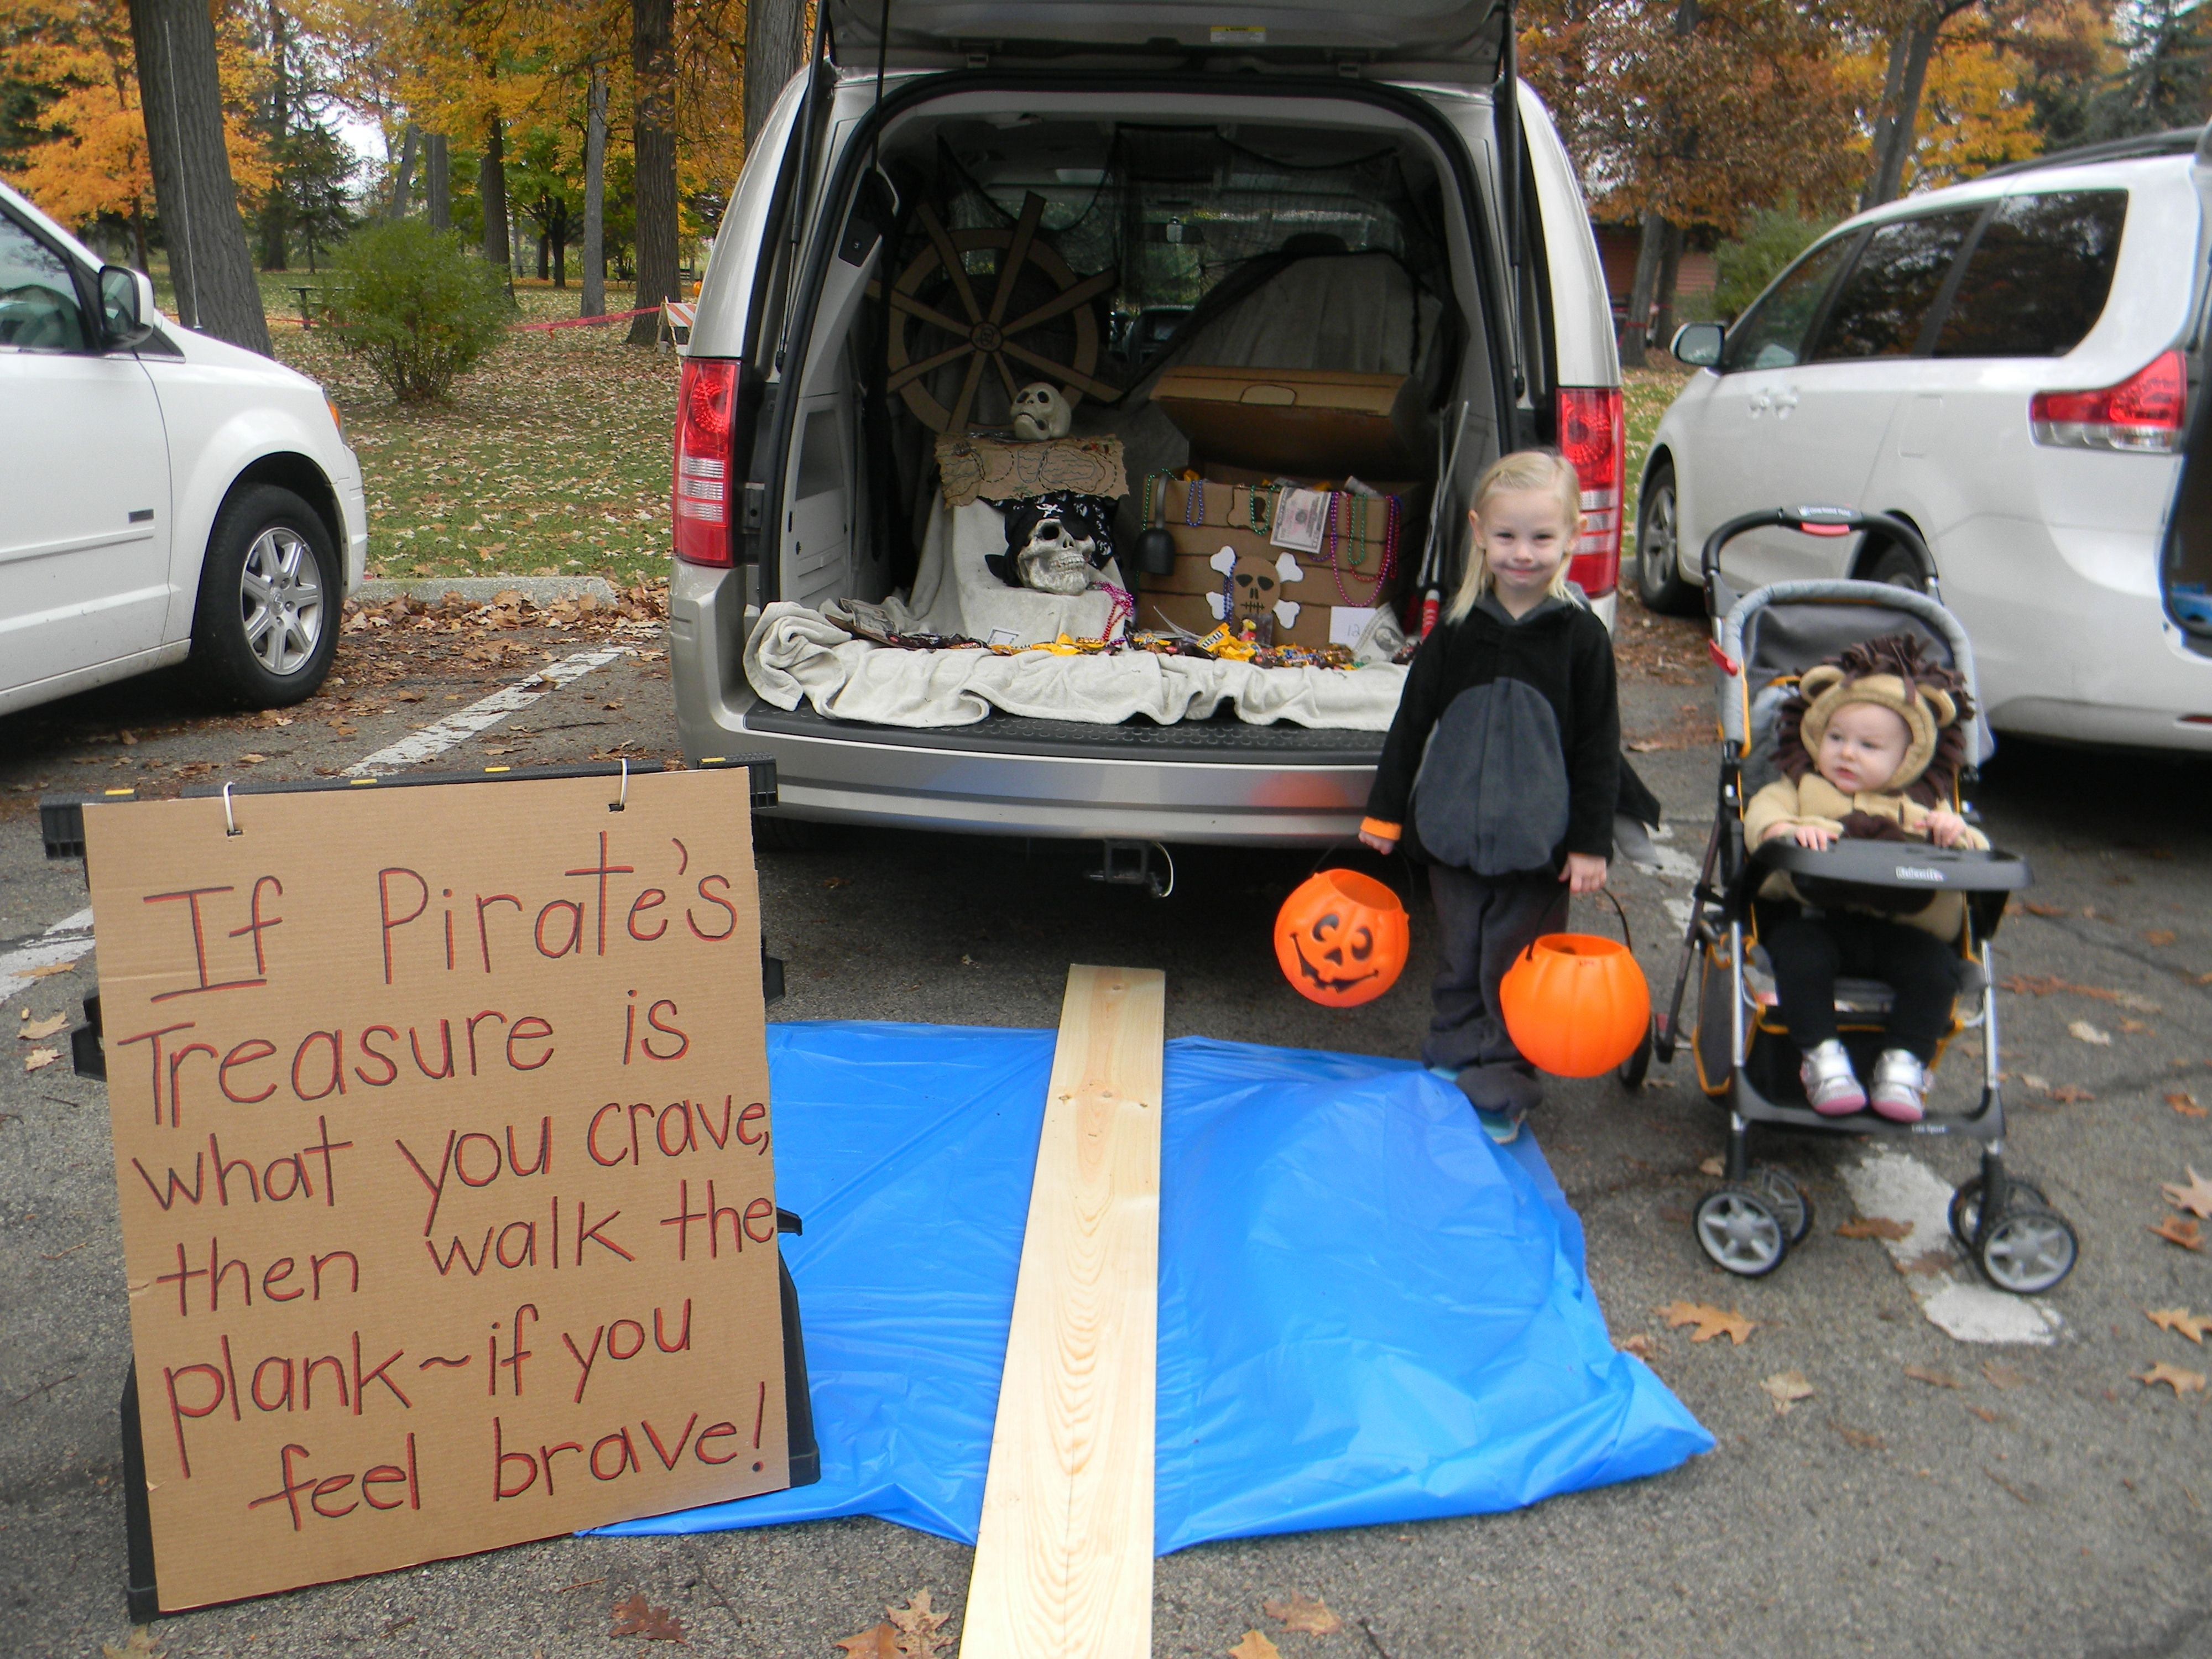 Pirate Trunk Or Treat If Pirate S Treasure Is What You Crave